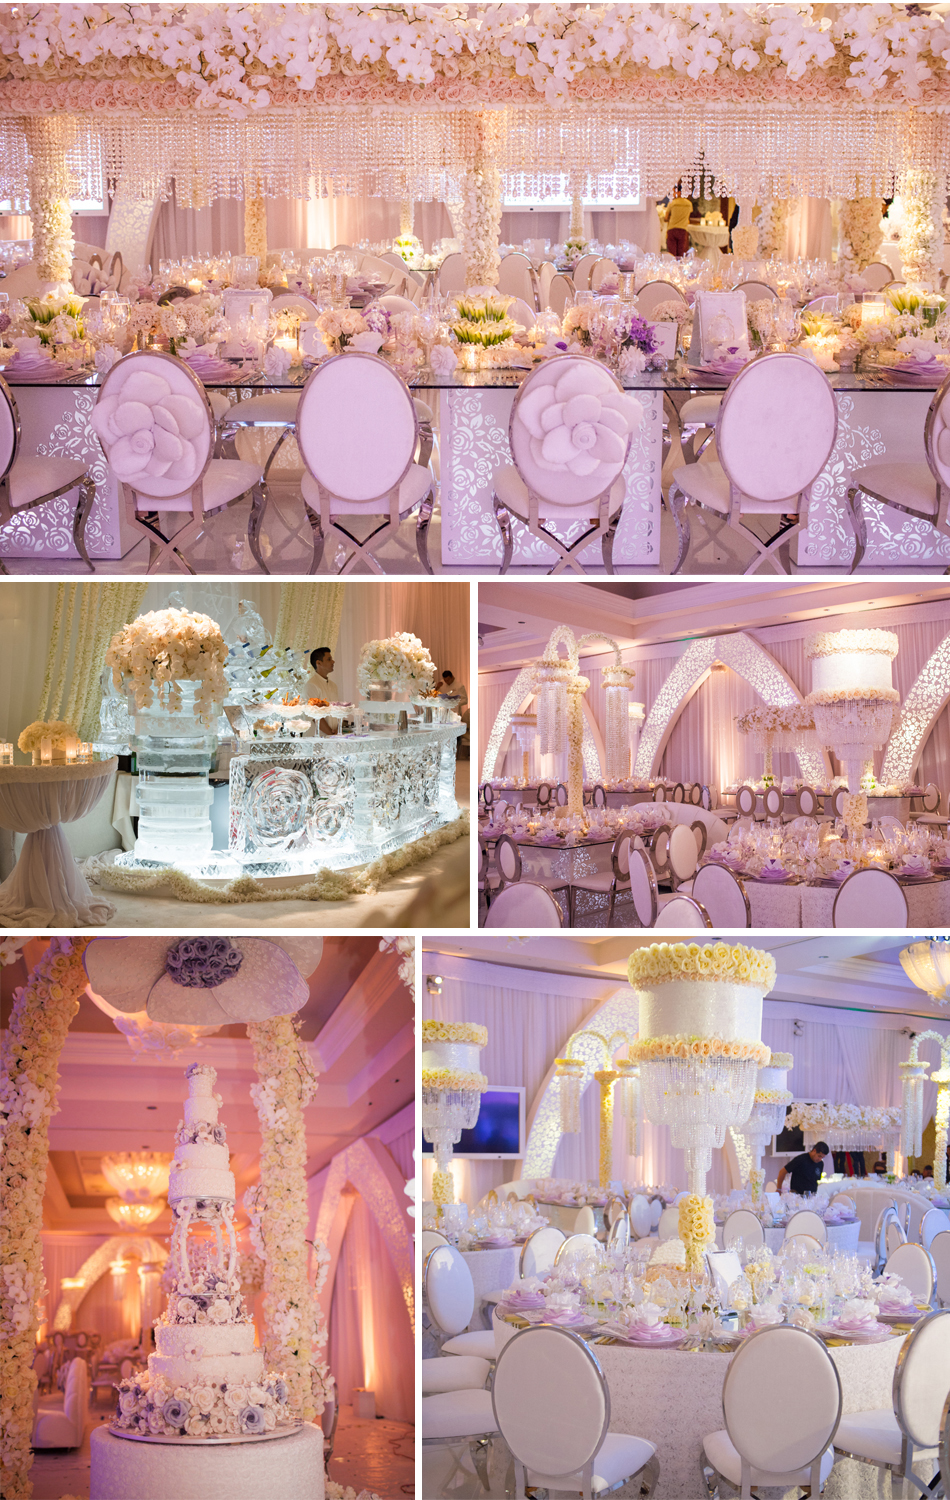 internationaleventcompany.com | International Event Company Los Angeles Wedding Planner and Designer | Weddings at Monarch Beach Resort | Luxury Event Planners in Southern California _ (6).jpg